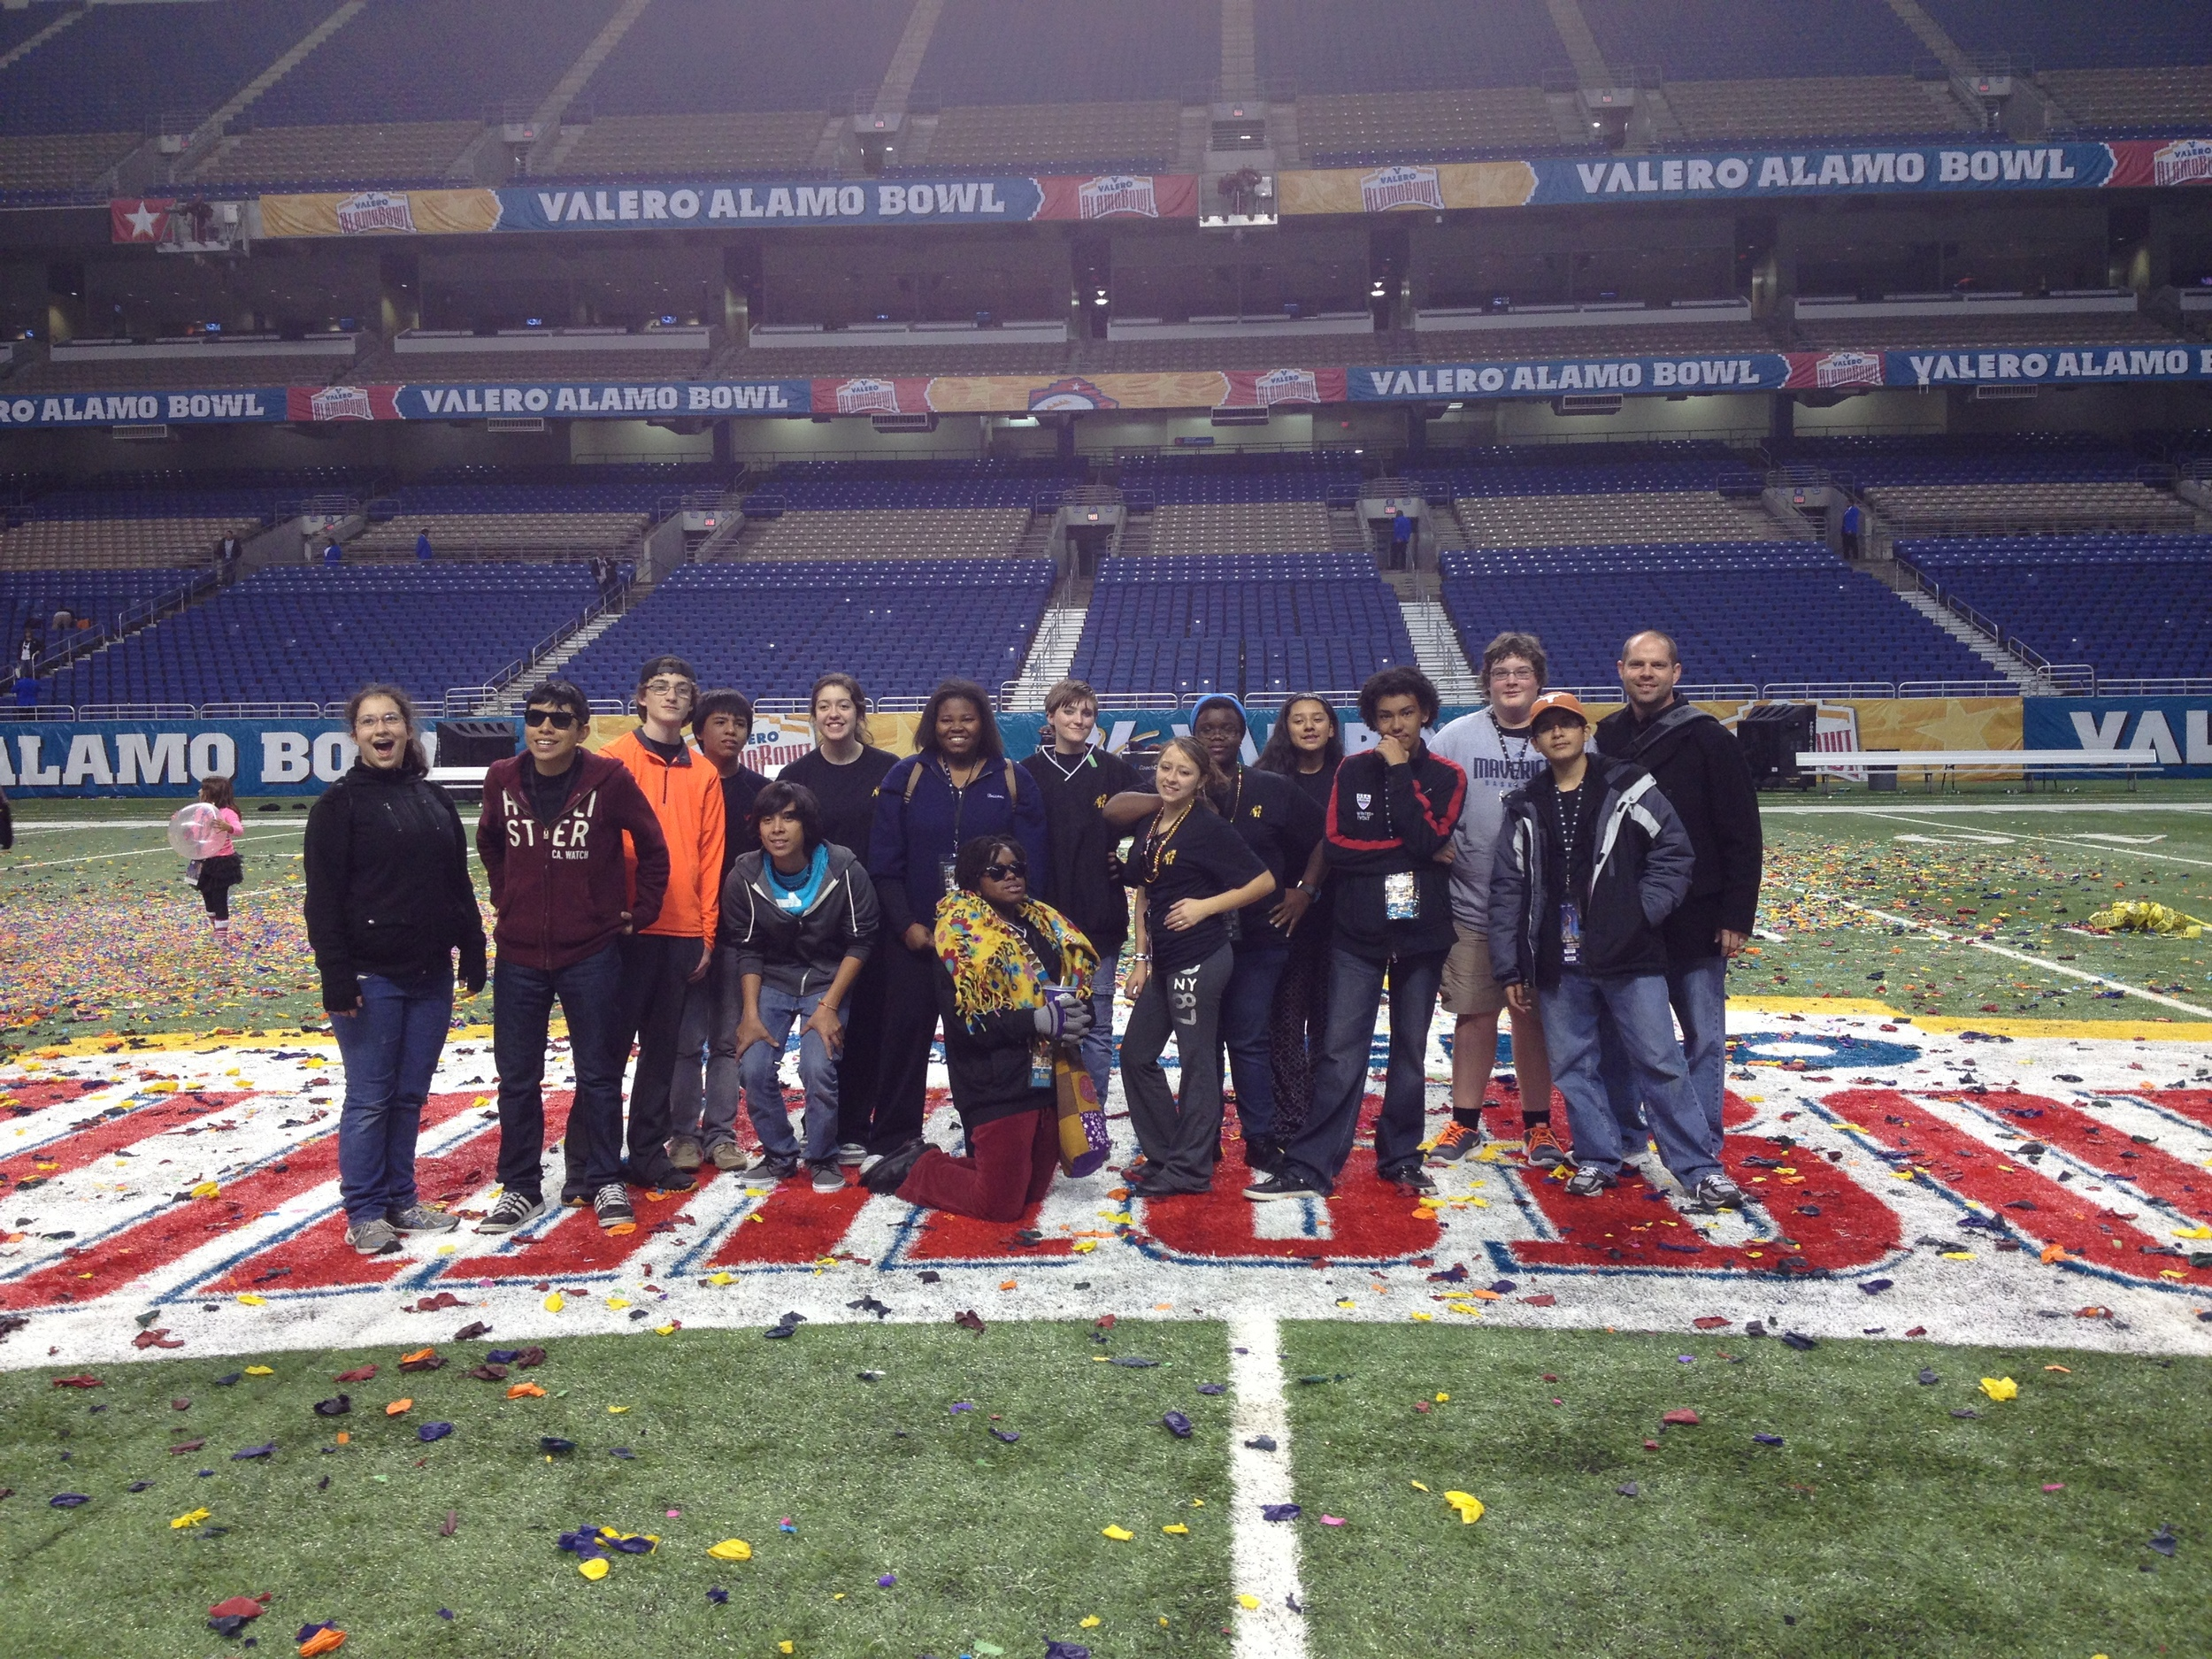 Members of the AHHS Band strike a pose on the field of the Alamo Bowl